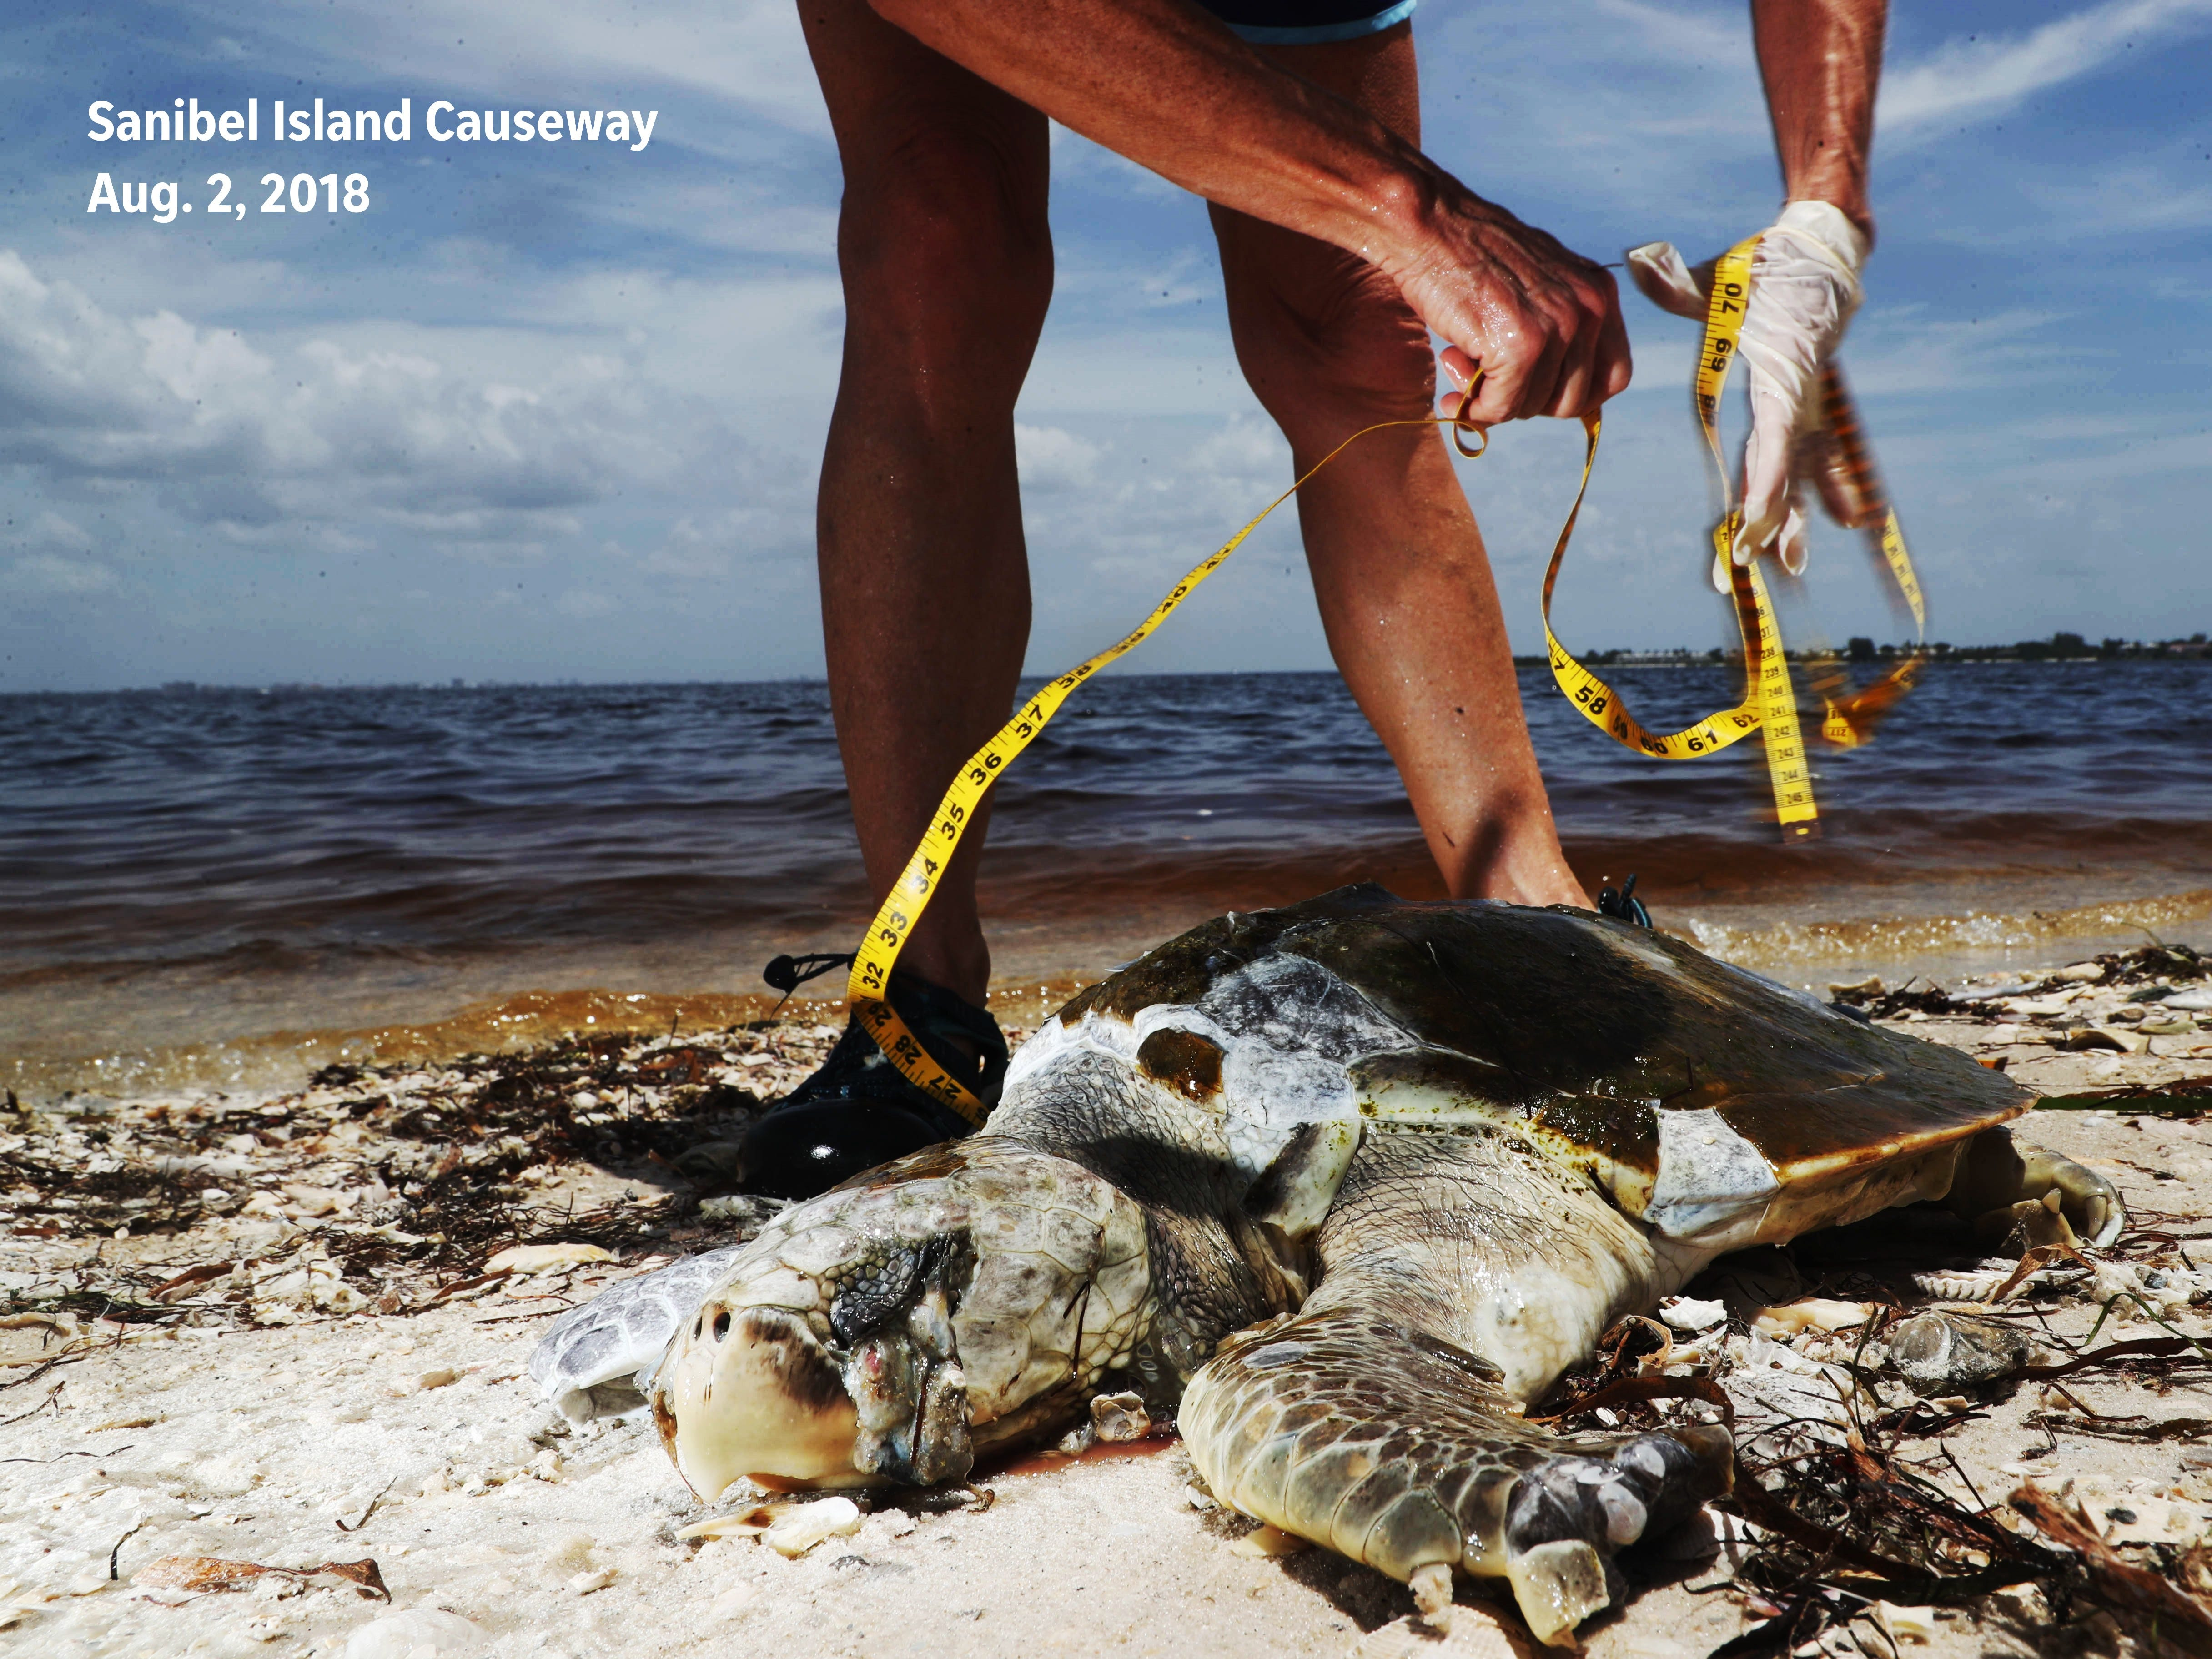 Before: A dead Kemp's Ridley sea turtle was documented and picked up by a Sanibel Captiva Conservation Foundation stranding volunteer on the Sanibel Causeway on Aug, 2, 2018.